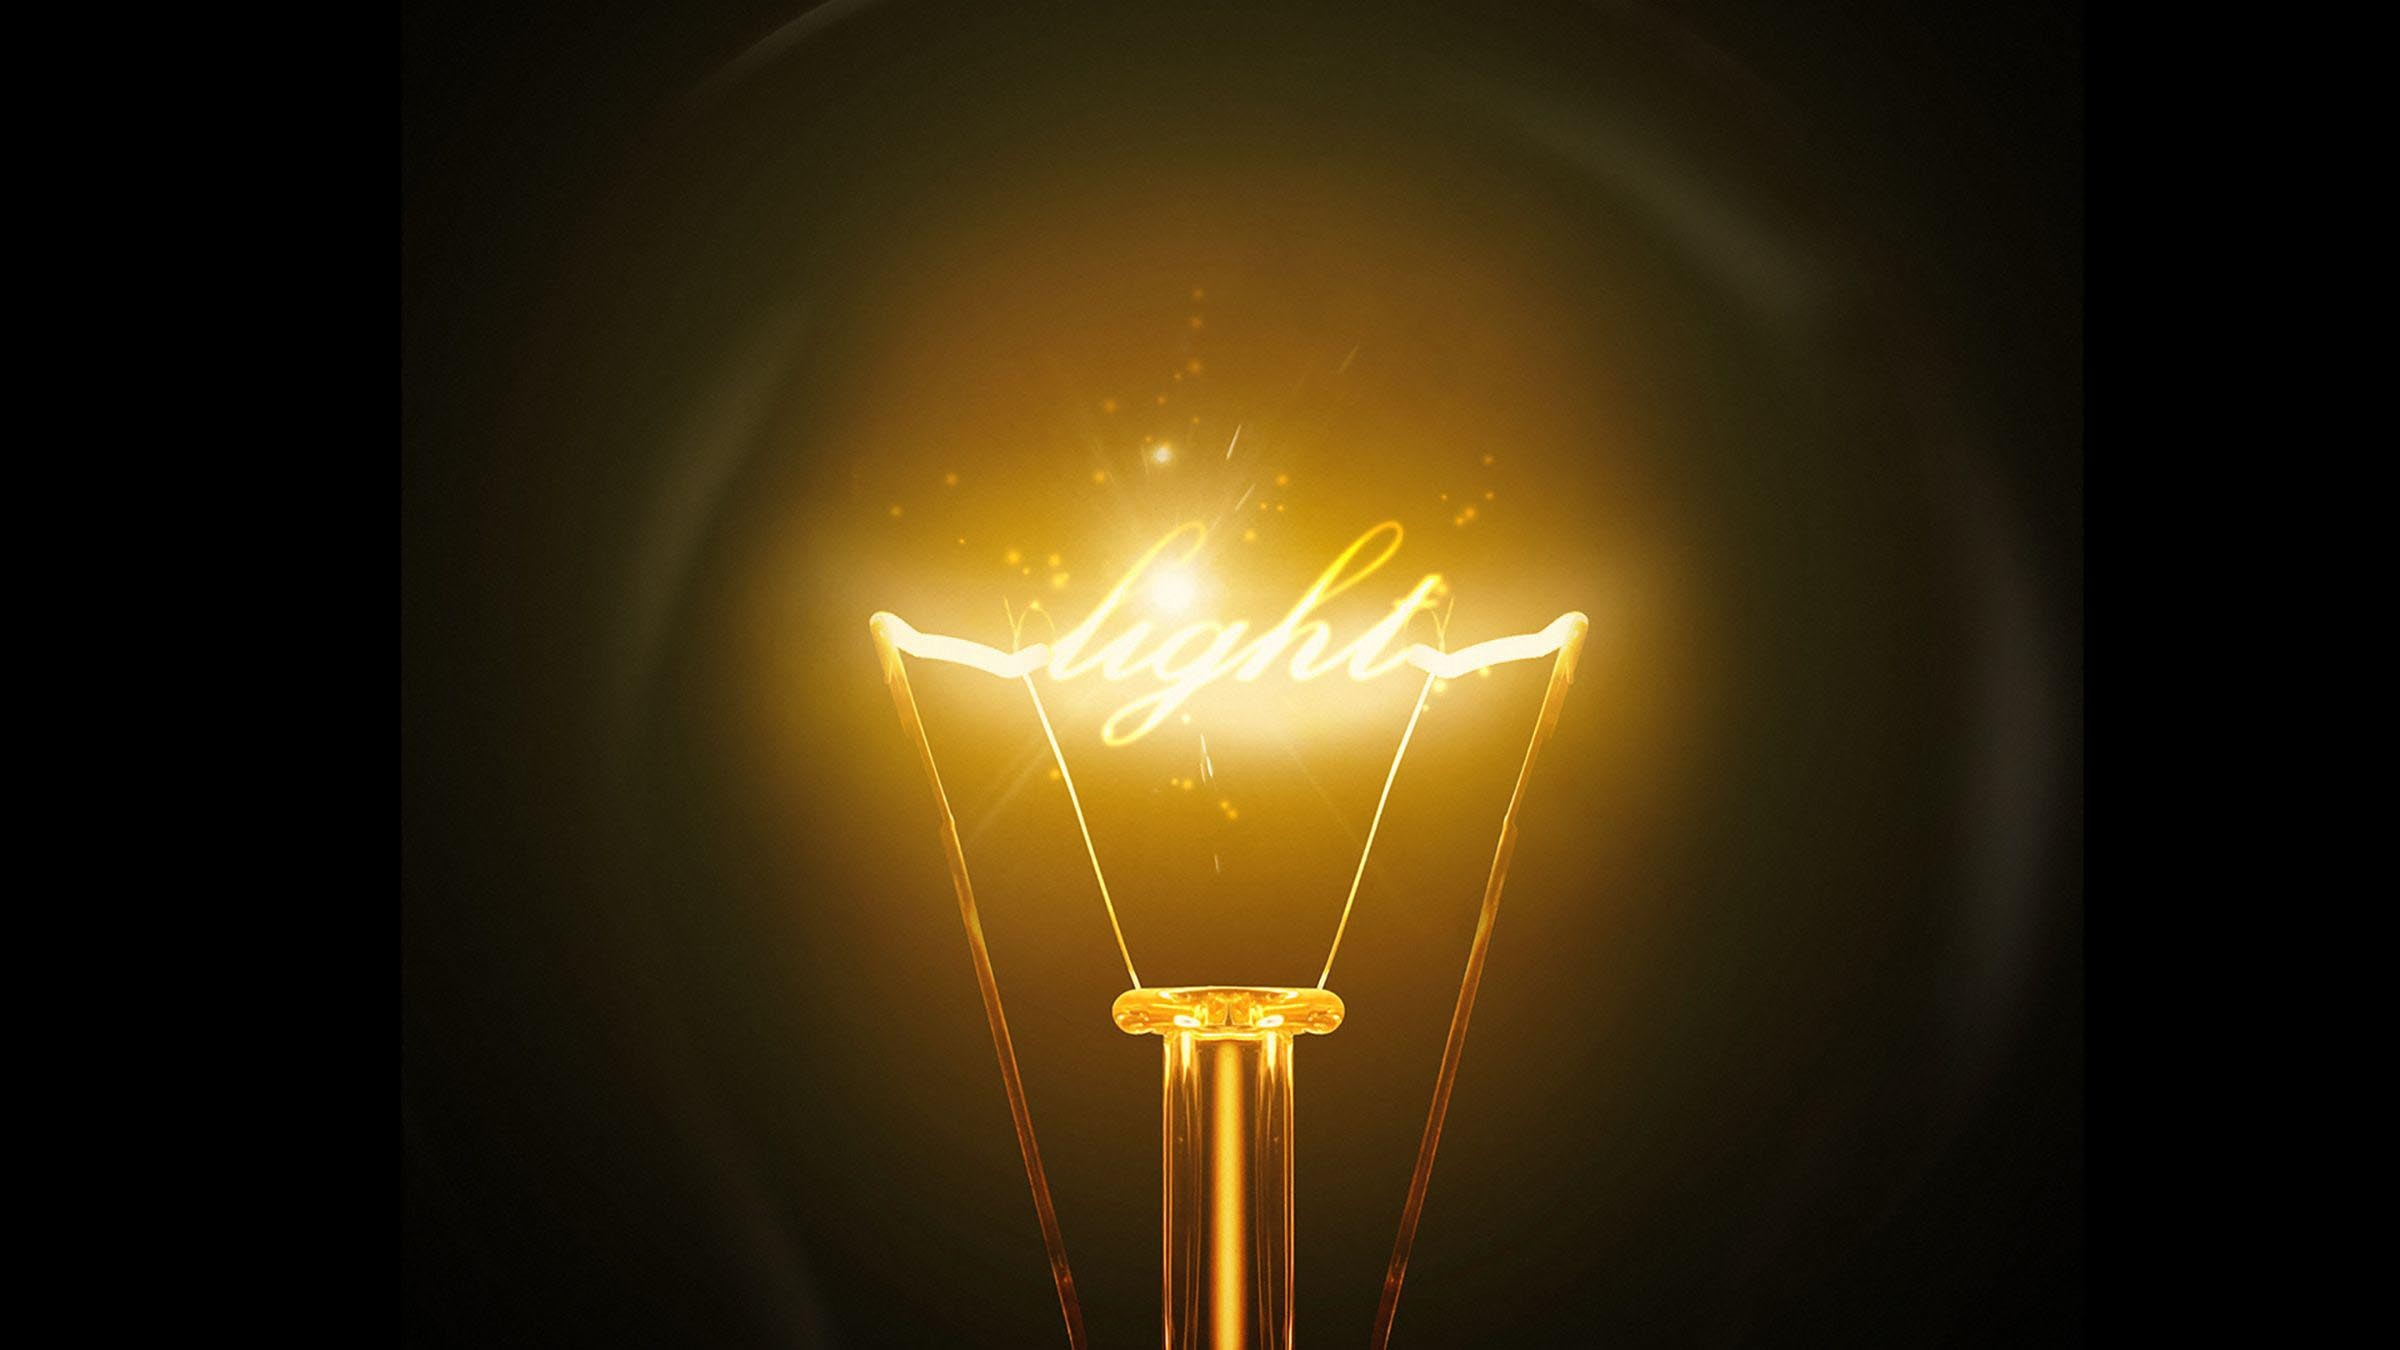 Start Being the Light of the World